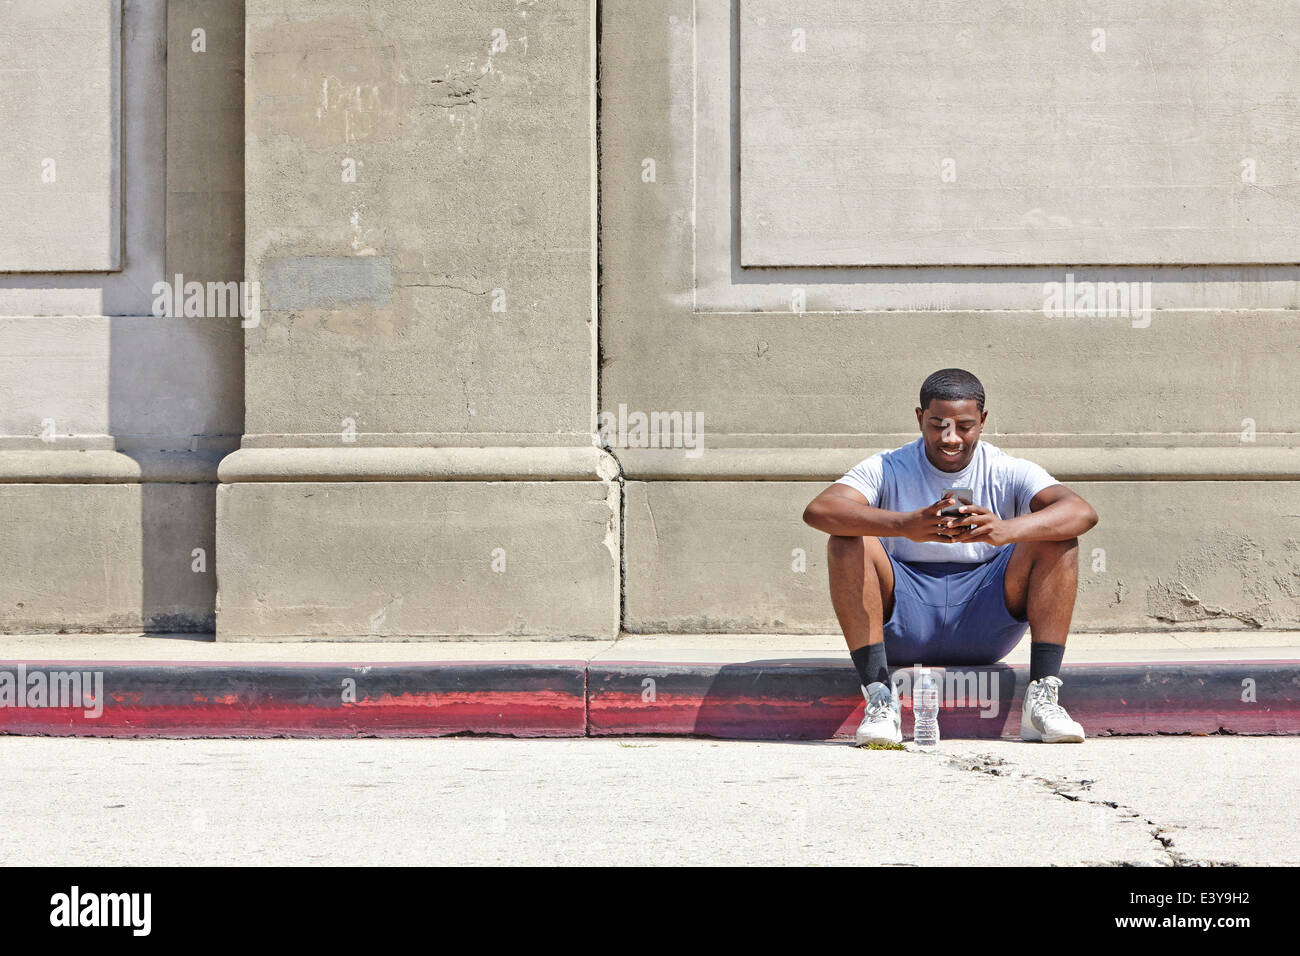 Young male runner sitting on sidewalk texting on smartphone - Stock Image